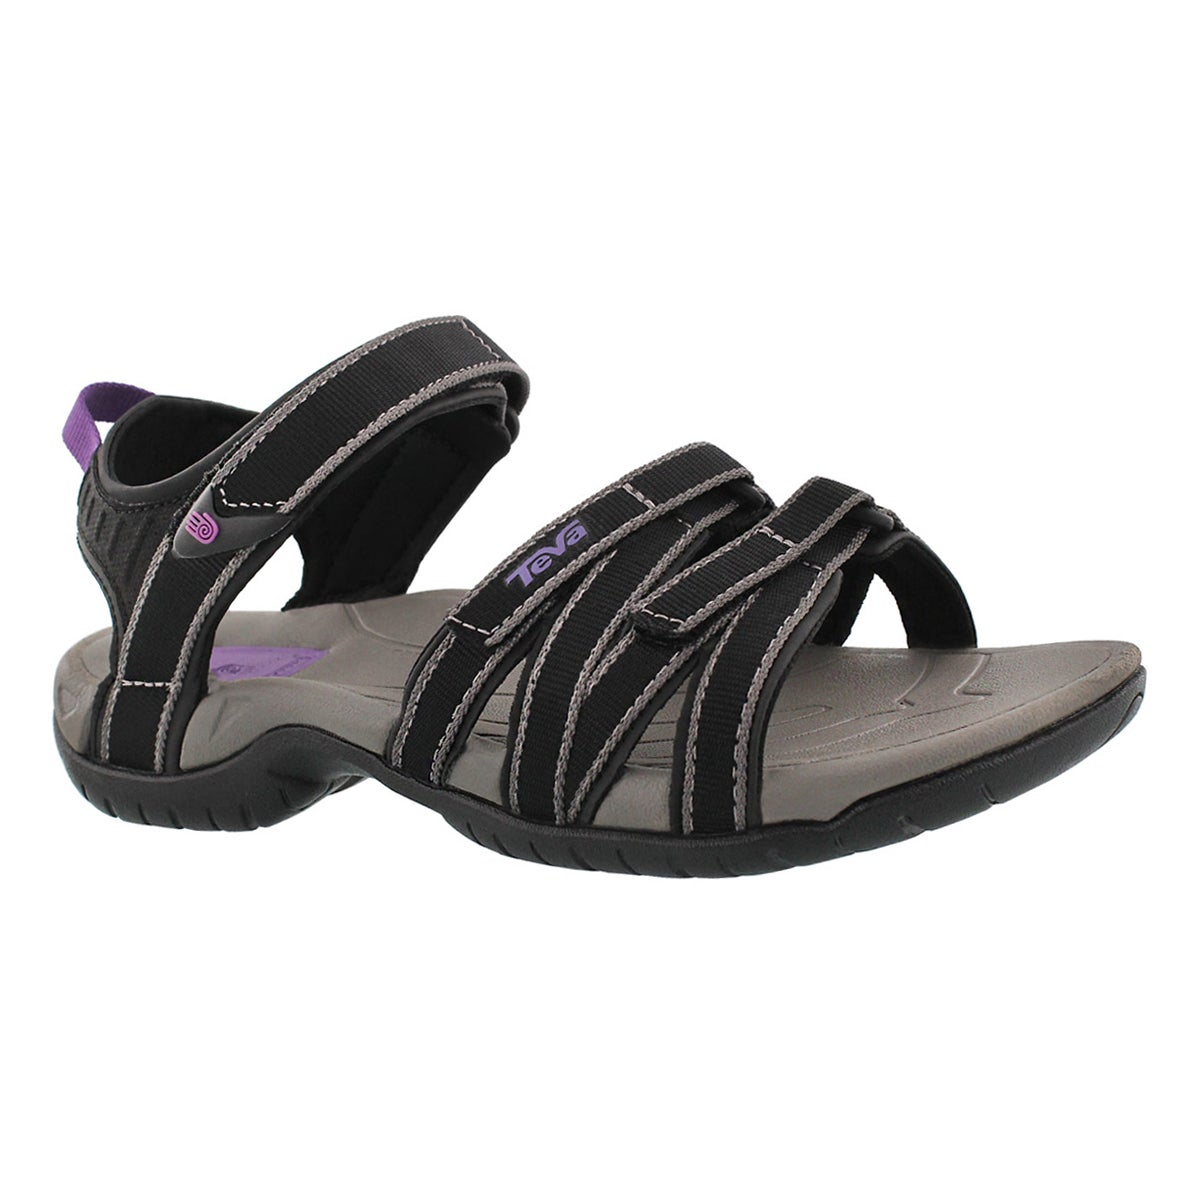 Women's TIRRA black/grey sport sandals